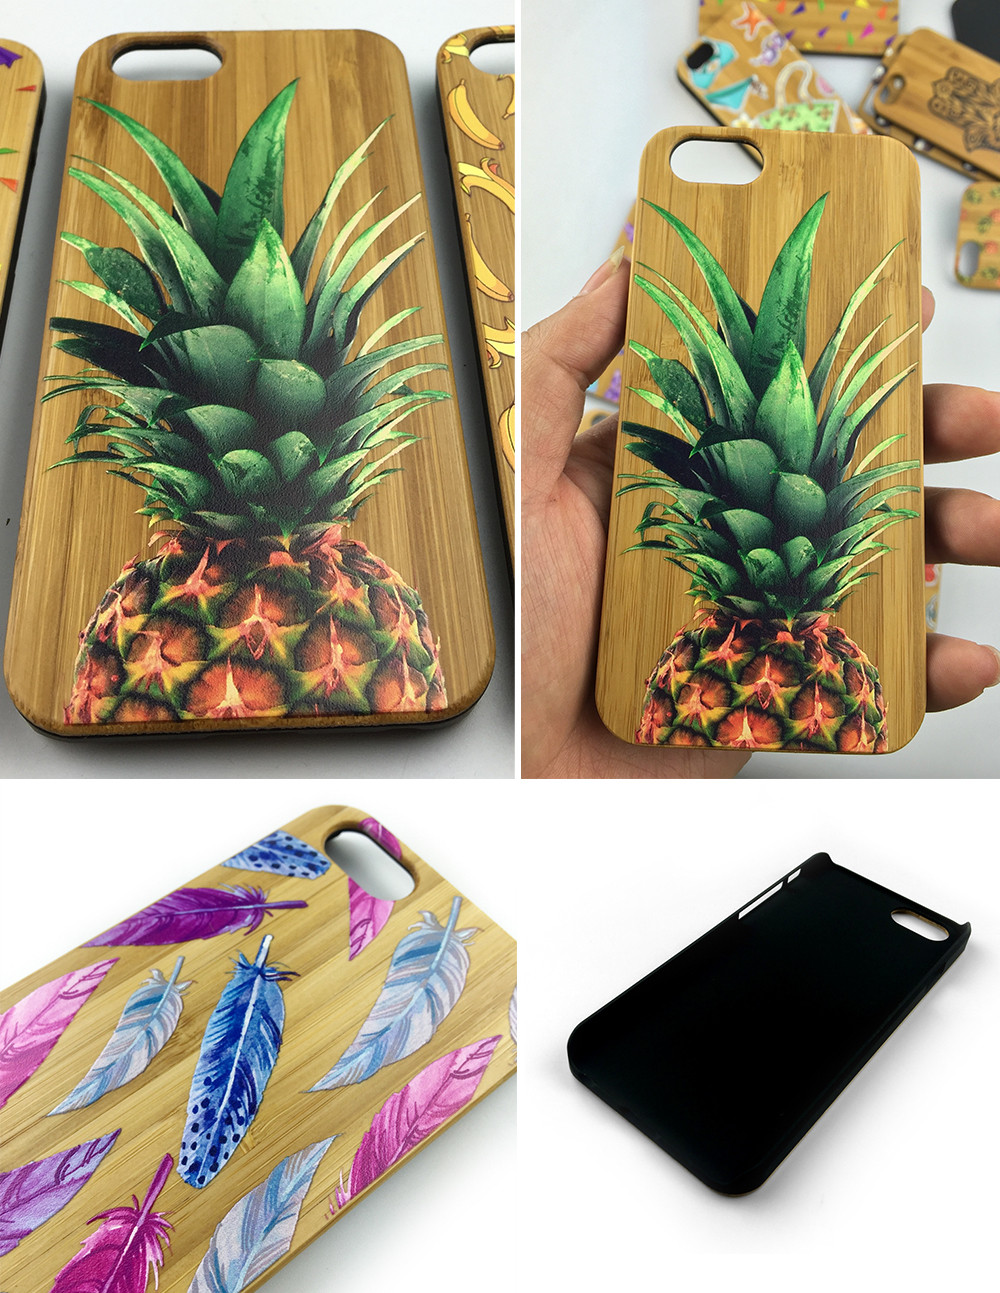 2017 UV phone wood smartphone case for iphone 7 case bamboo wood for samsung galaxy s6 s7 edge wood case for j7 j2